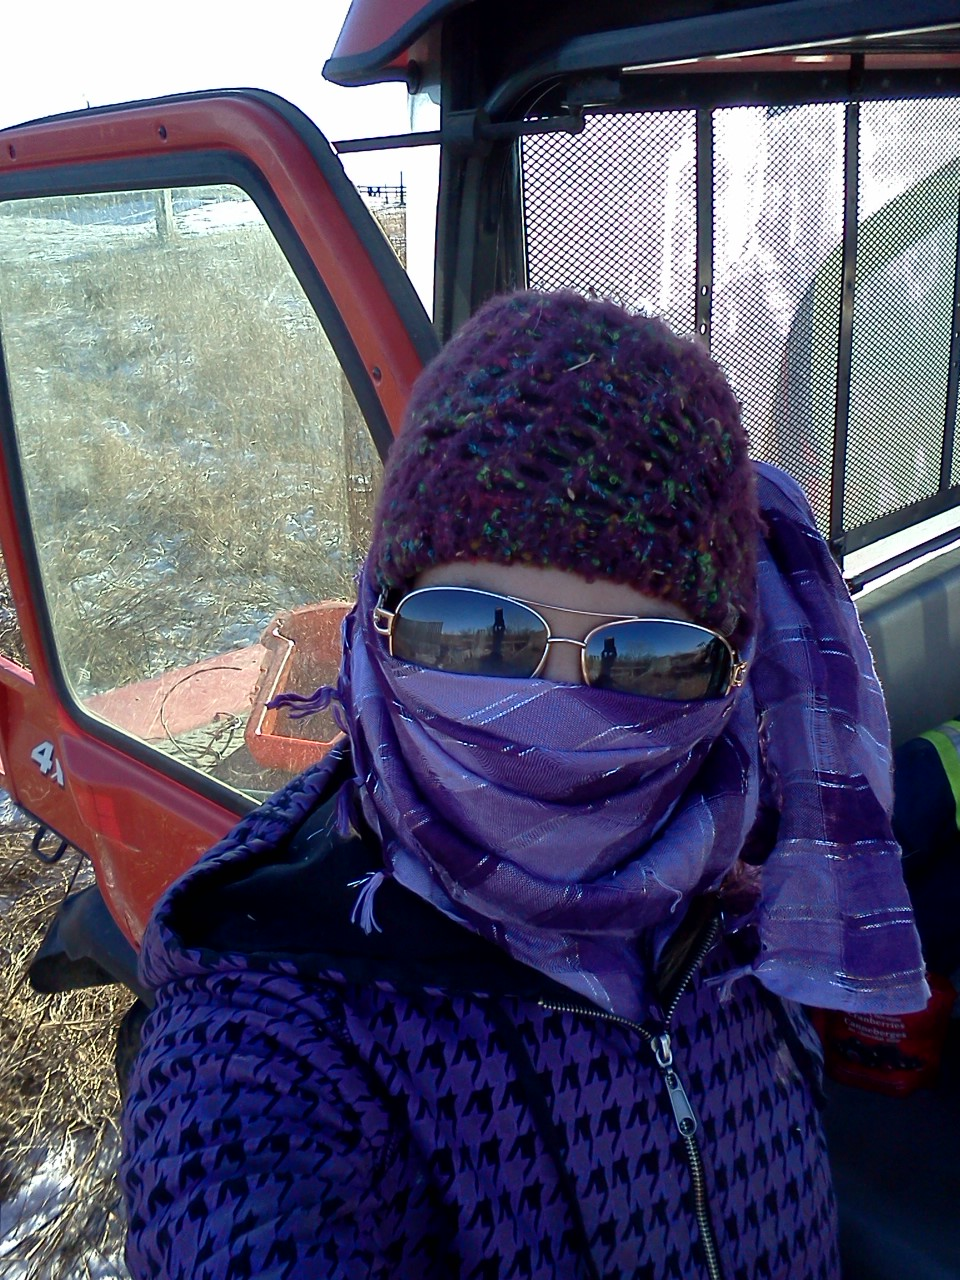 On Wednesdays we wear purple...and use chainsaws!